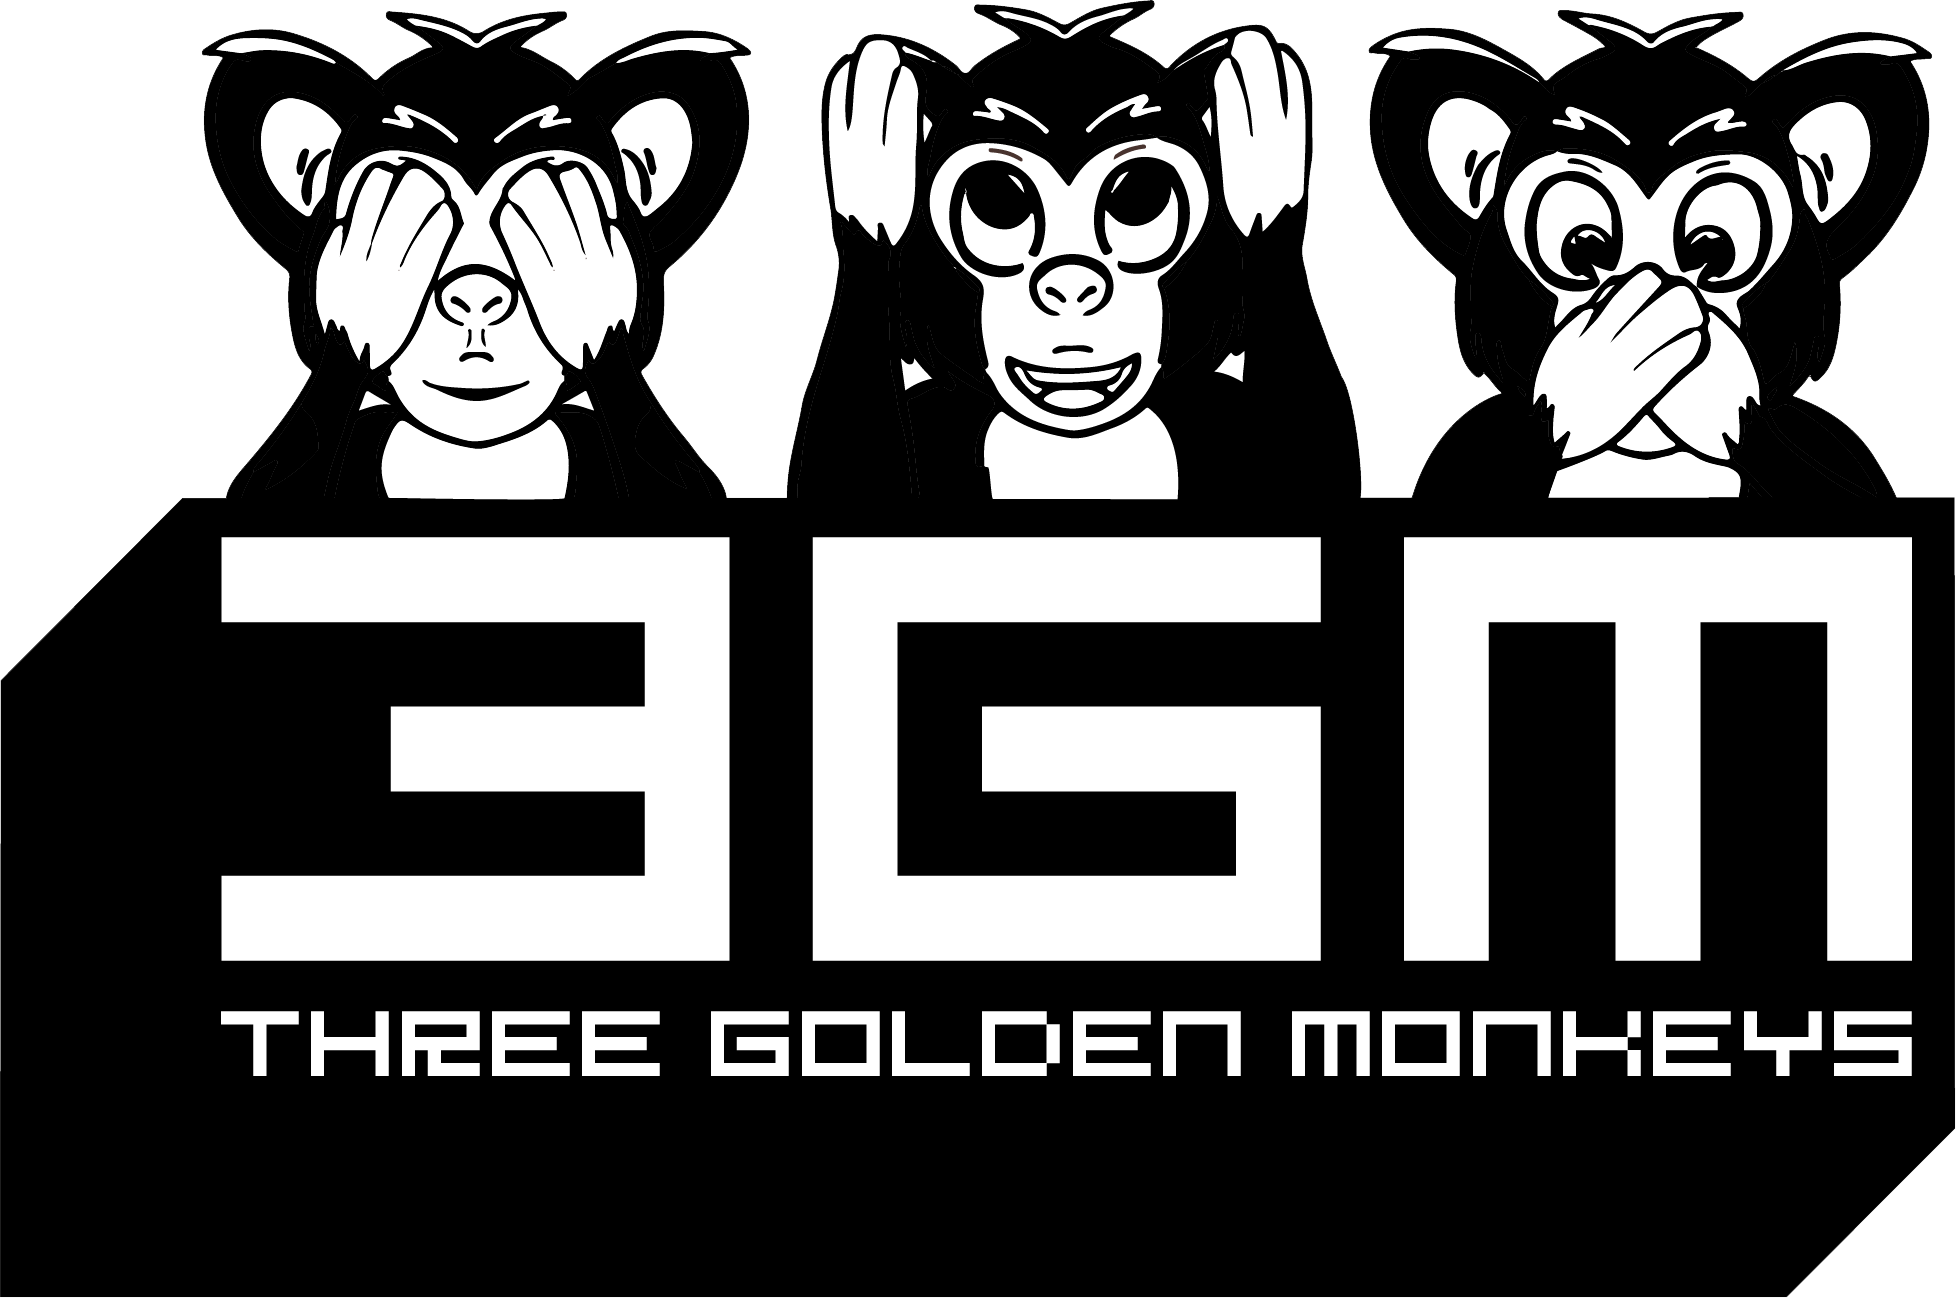 juegos de lucha Archives - Three Golden Monkeys Lab